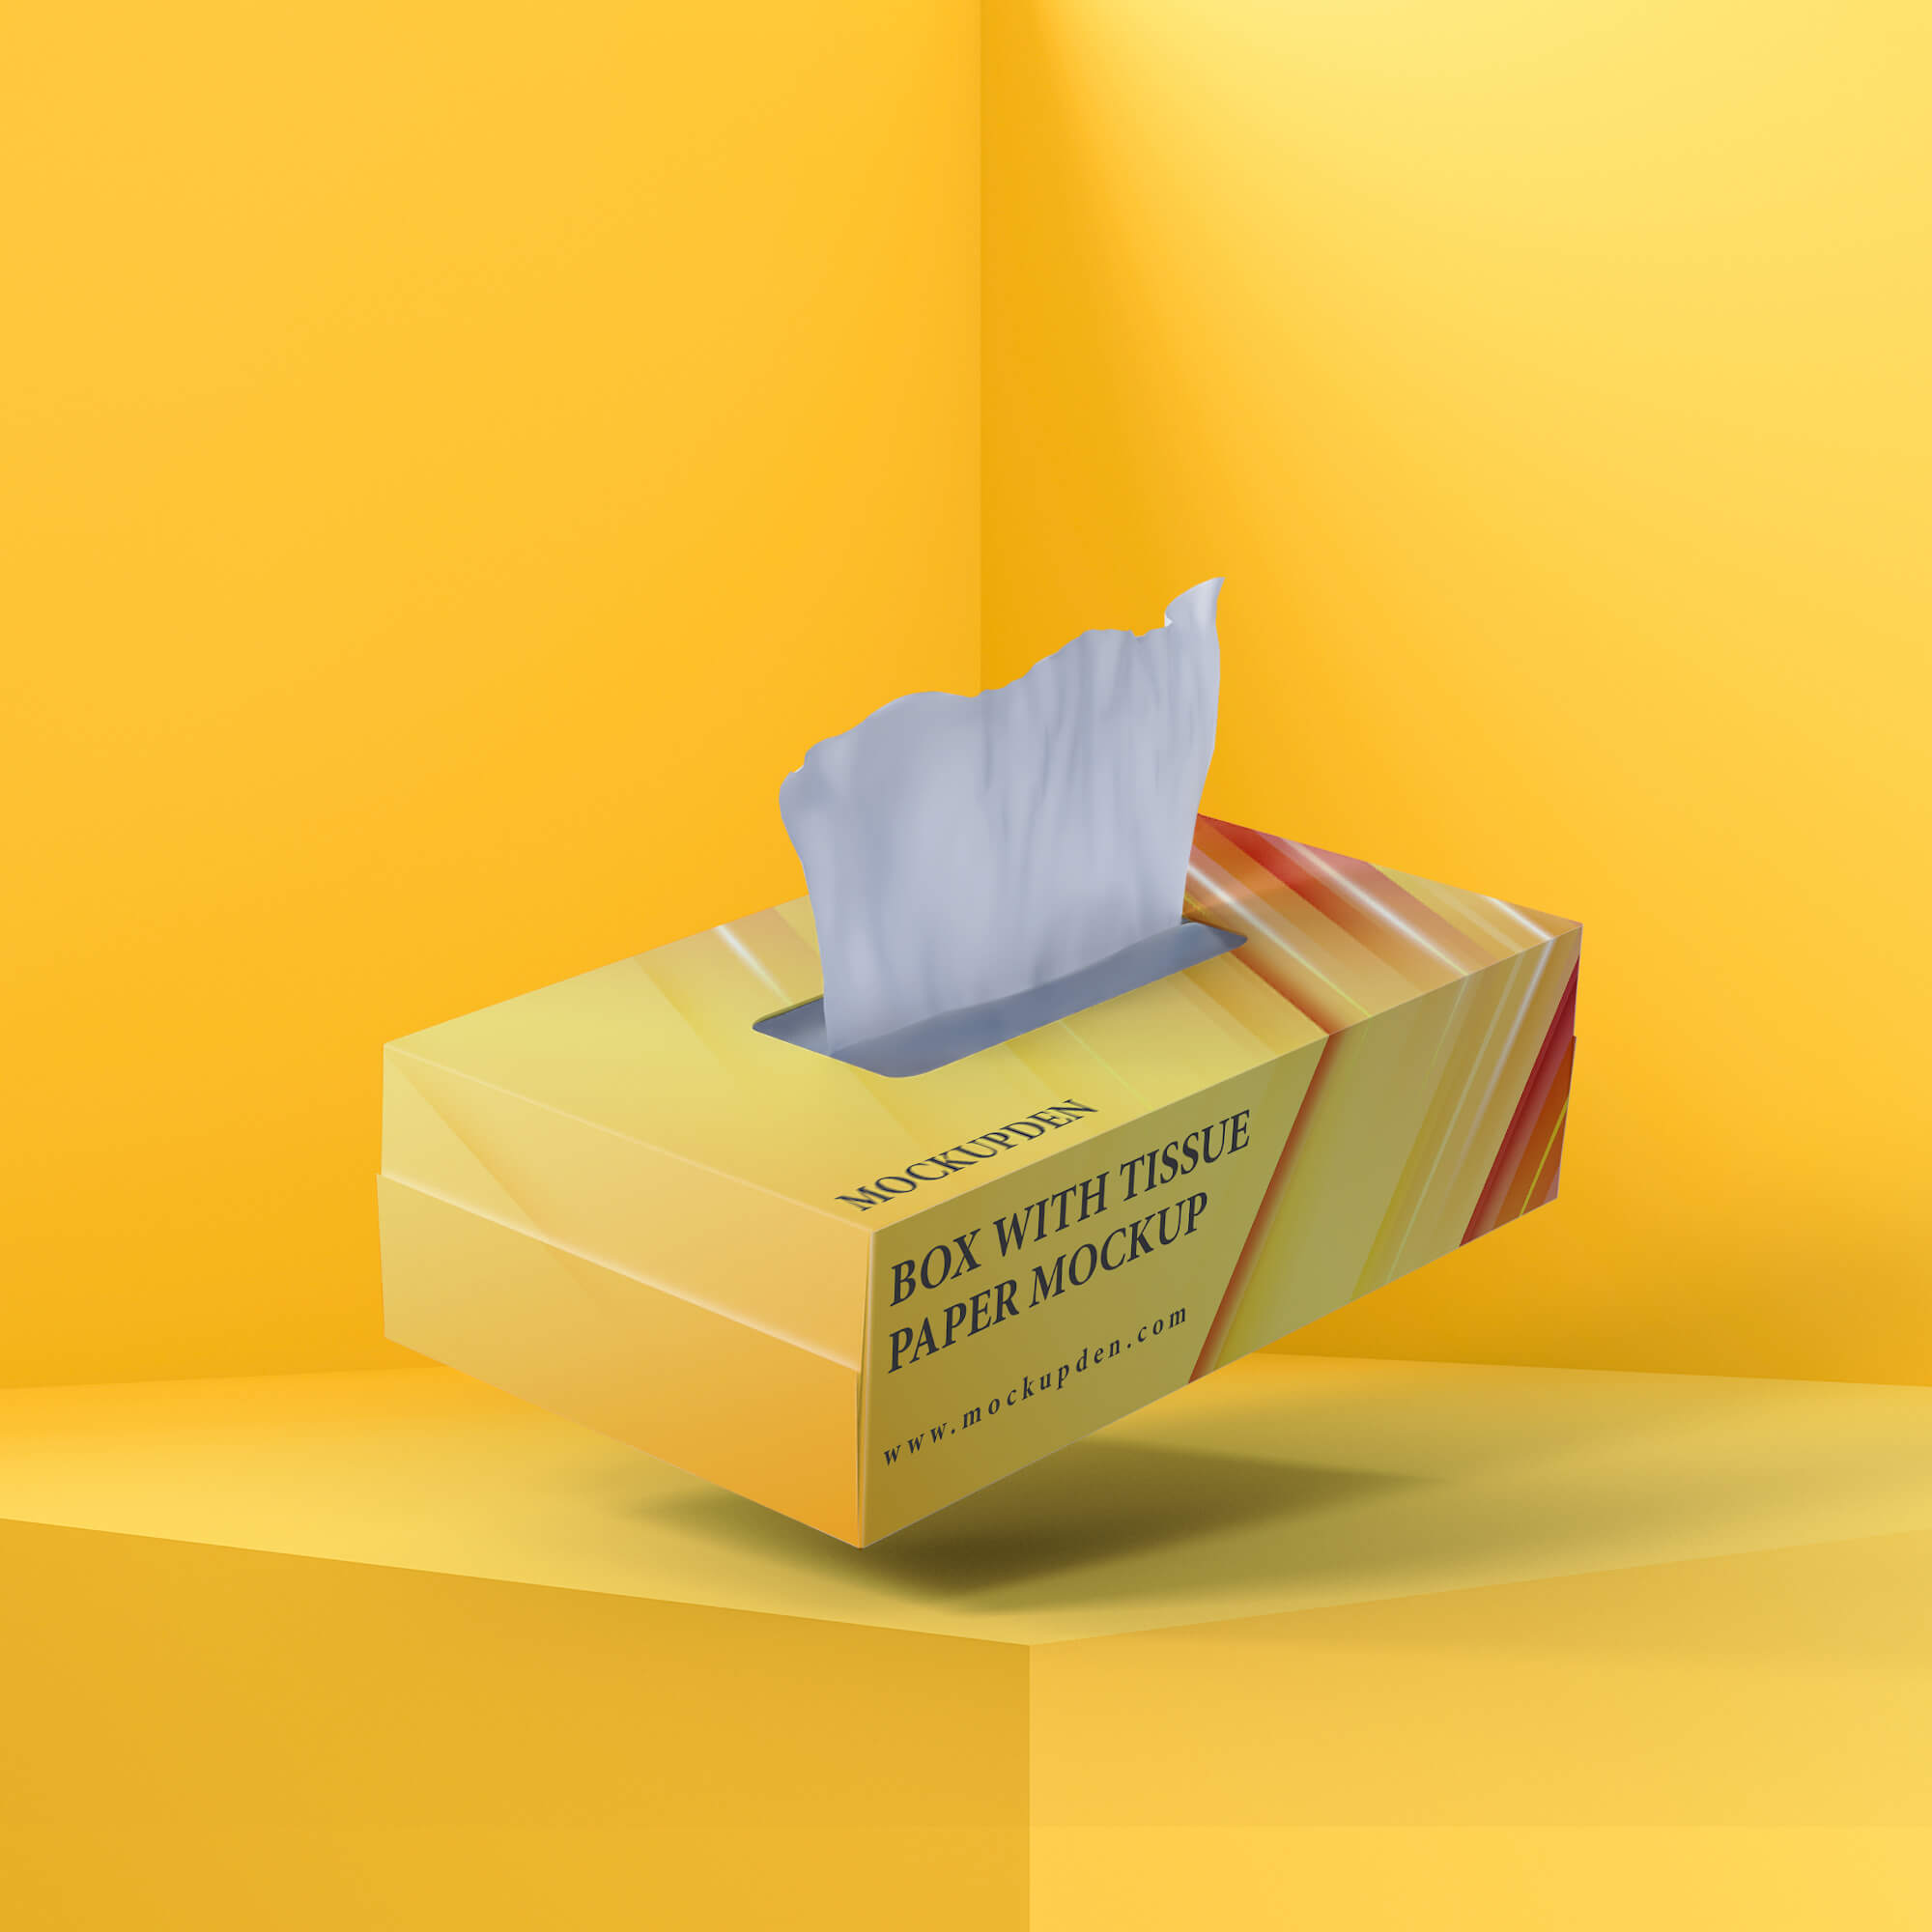 Free Box With Tissue Paper Mockup PSD Template